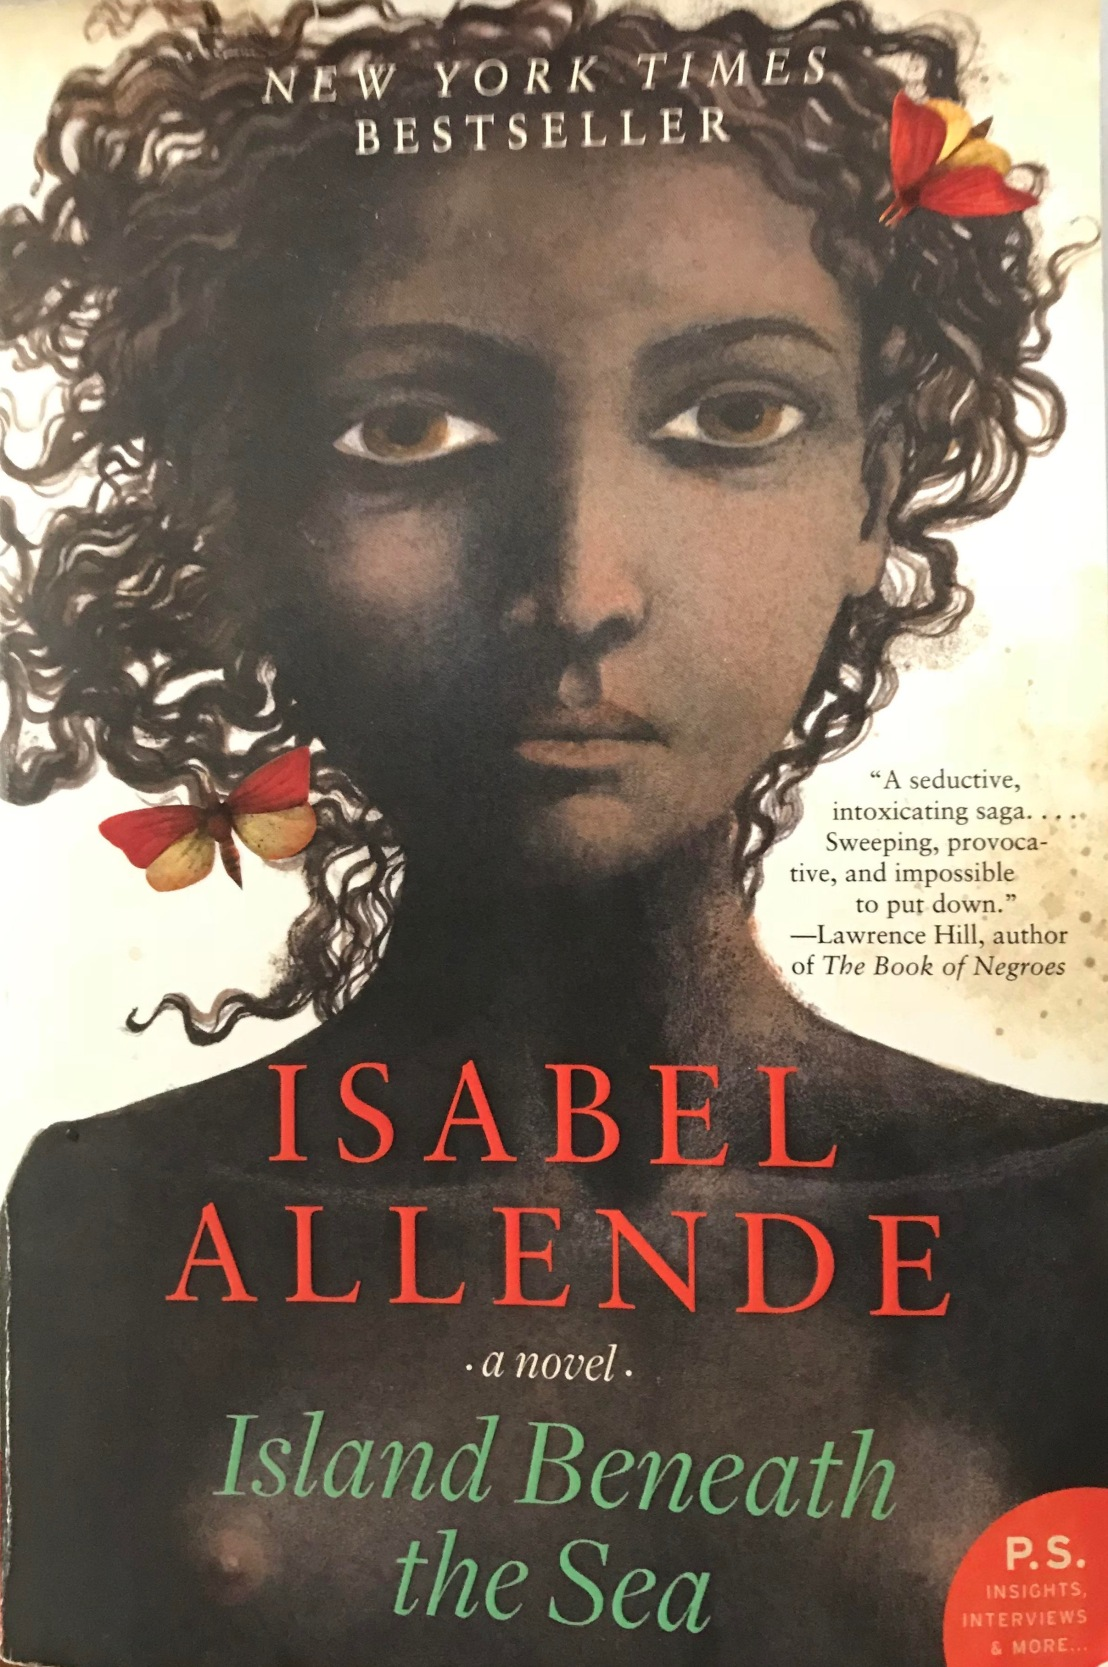 Isabel Allende's — Island beneath the sea *****